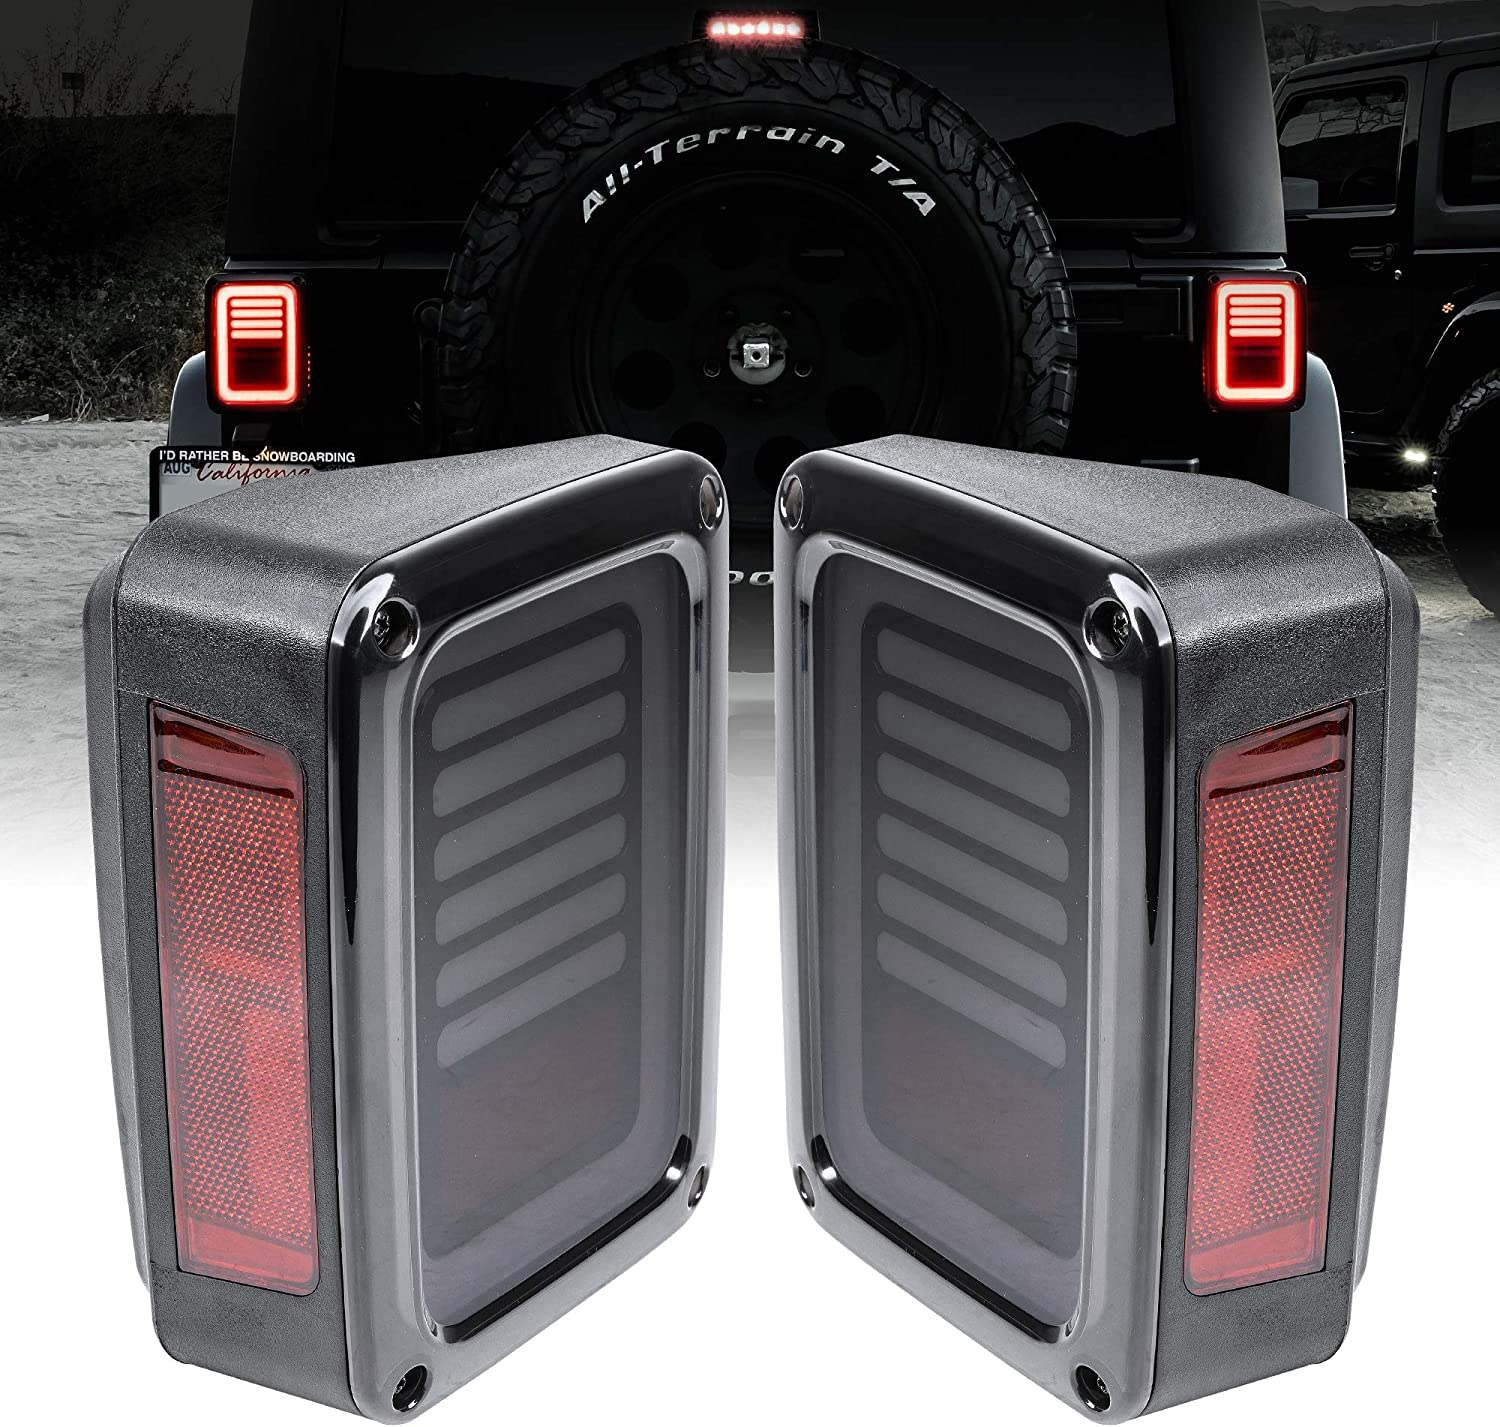 Max 59% OFF LED Rear Tail Light Replacement 2007-2018 Jeep Wrangler for San Antonio Mall Lin